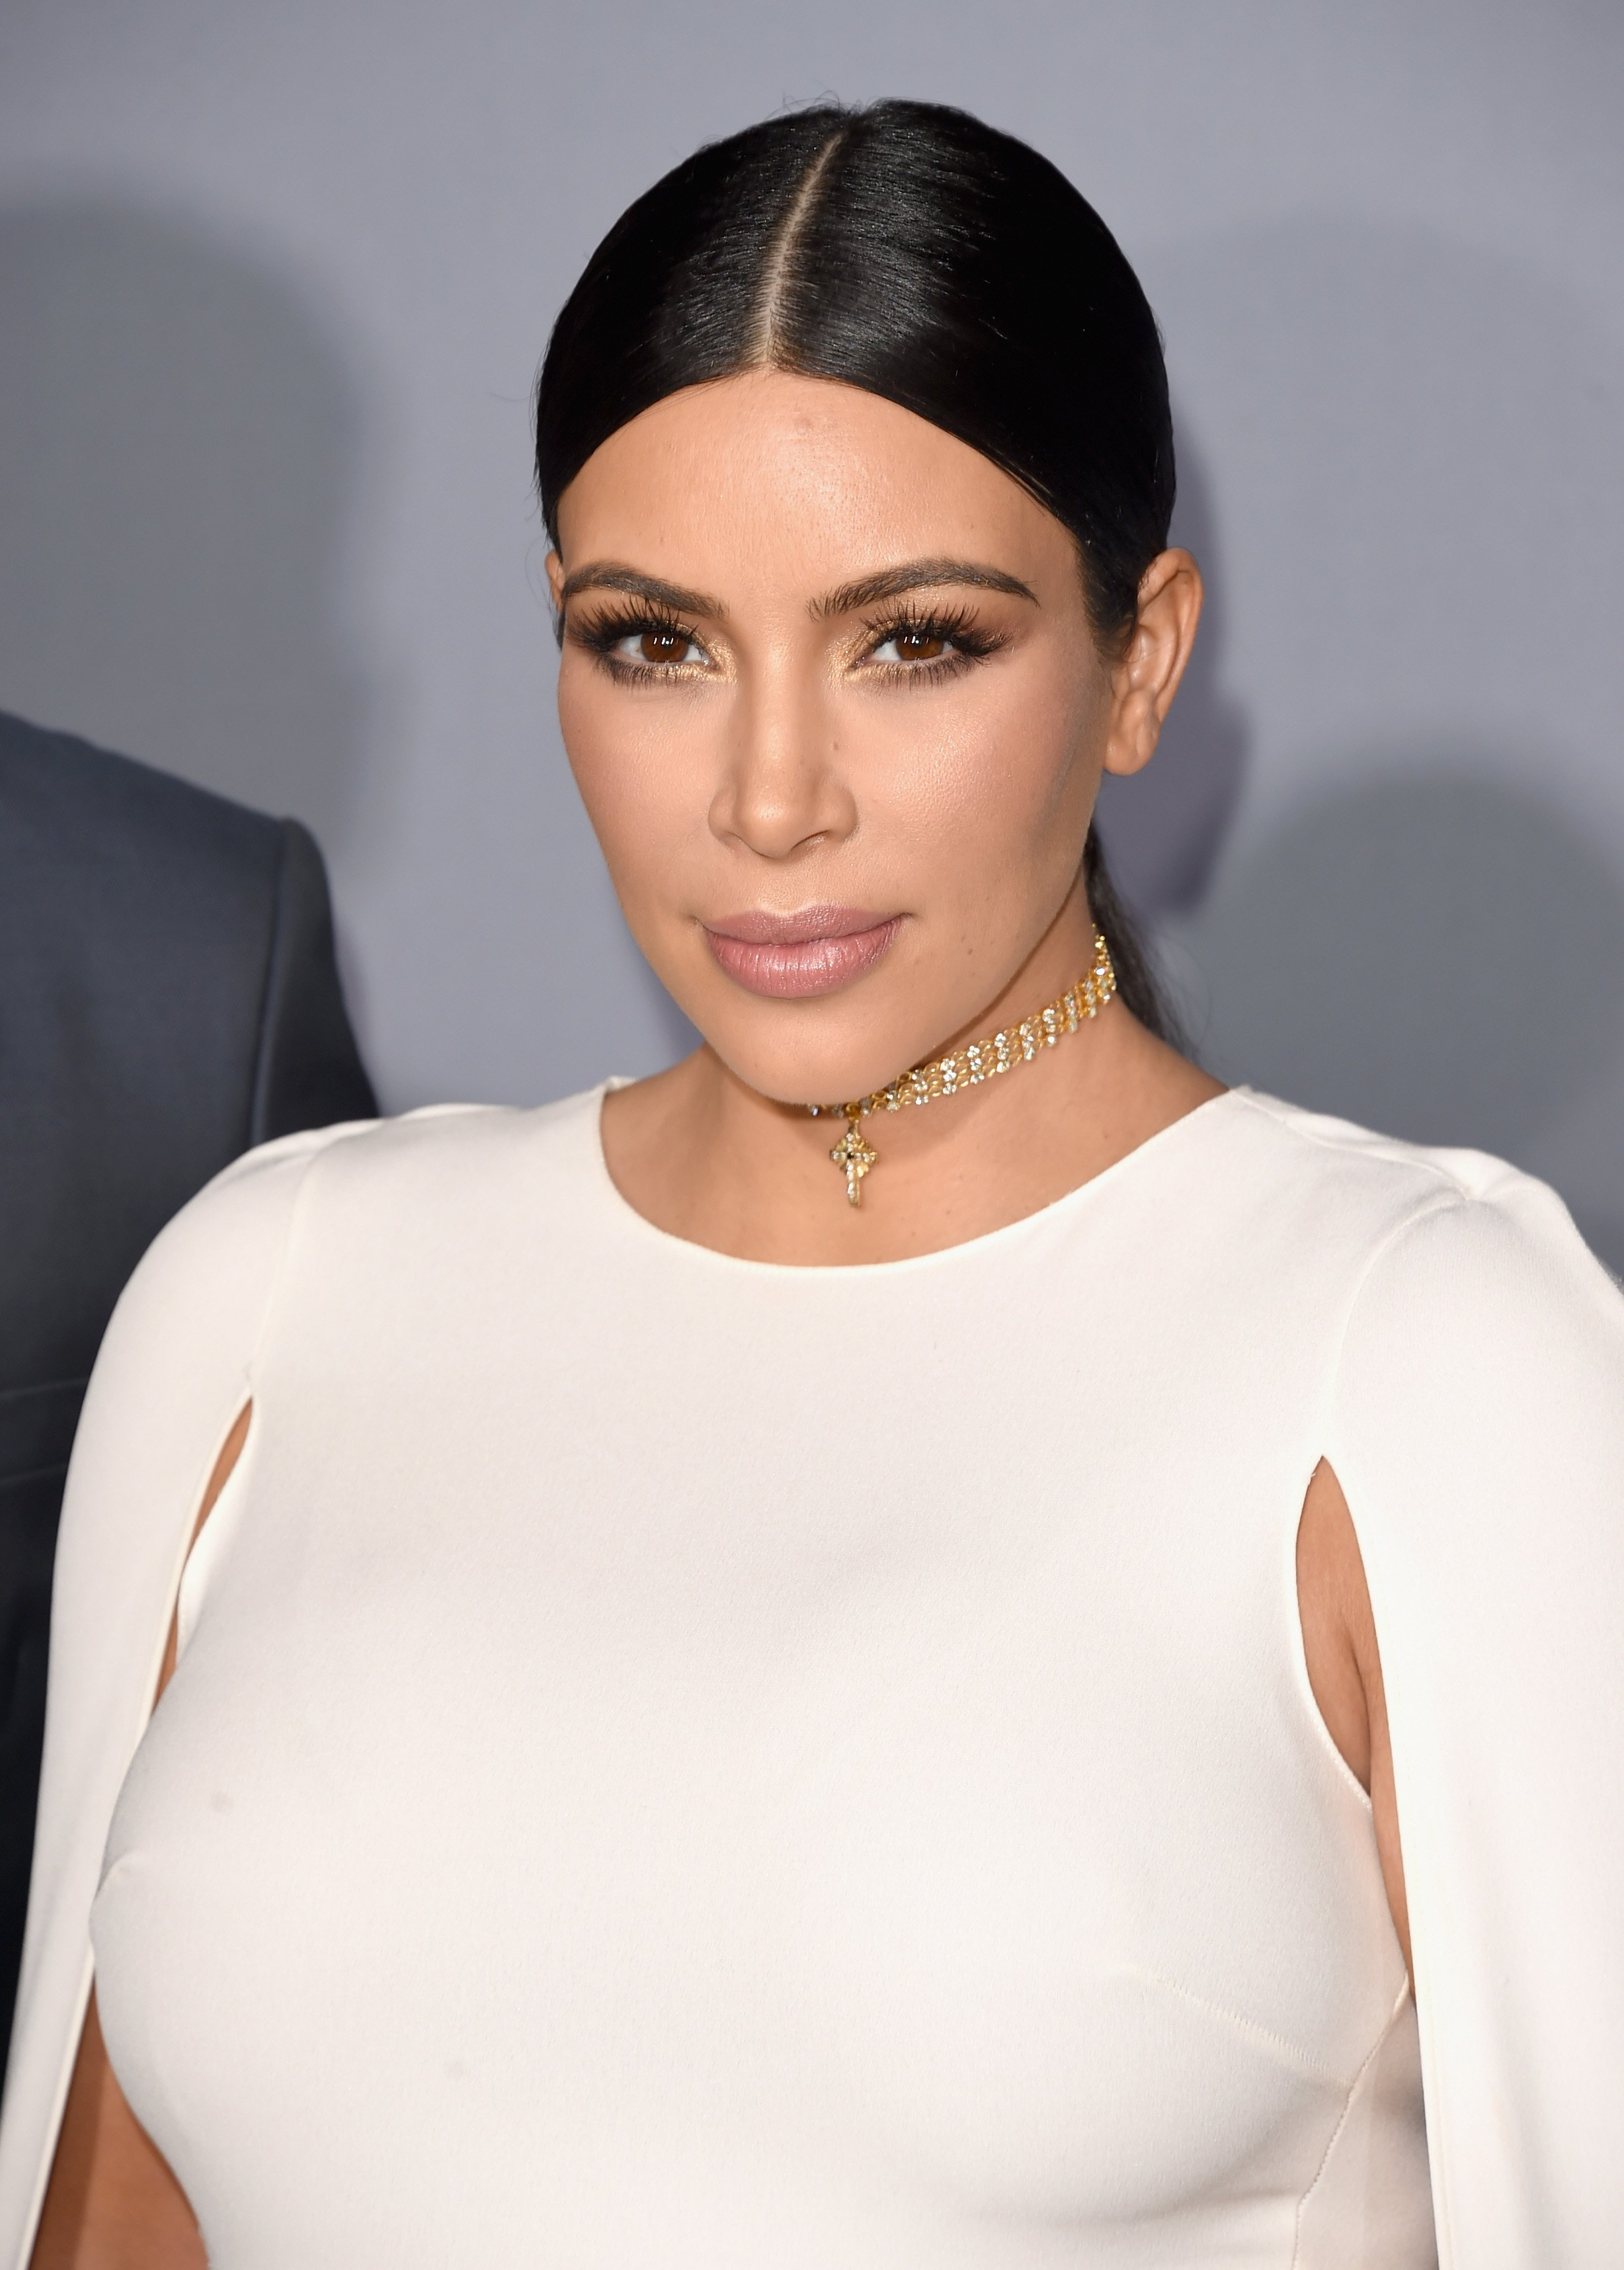 Kim Kardashian on the red carpet of the InStyle Awards in October 2015. | Photo: Getty Images